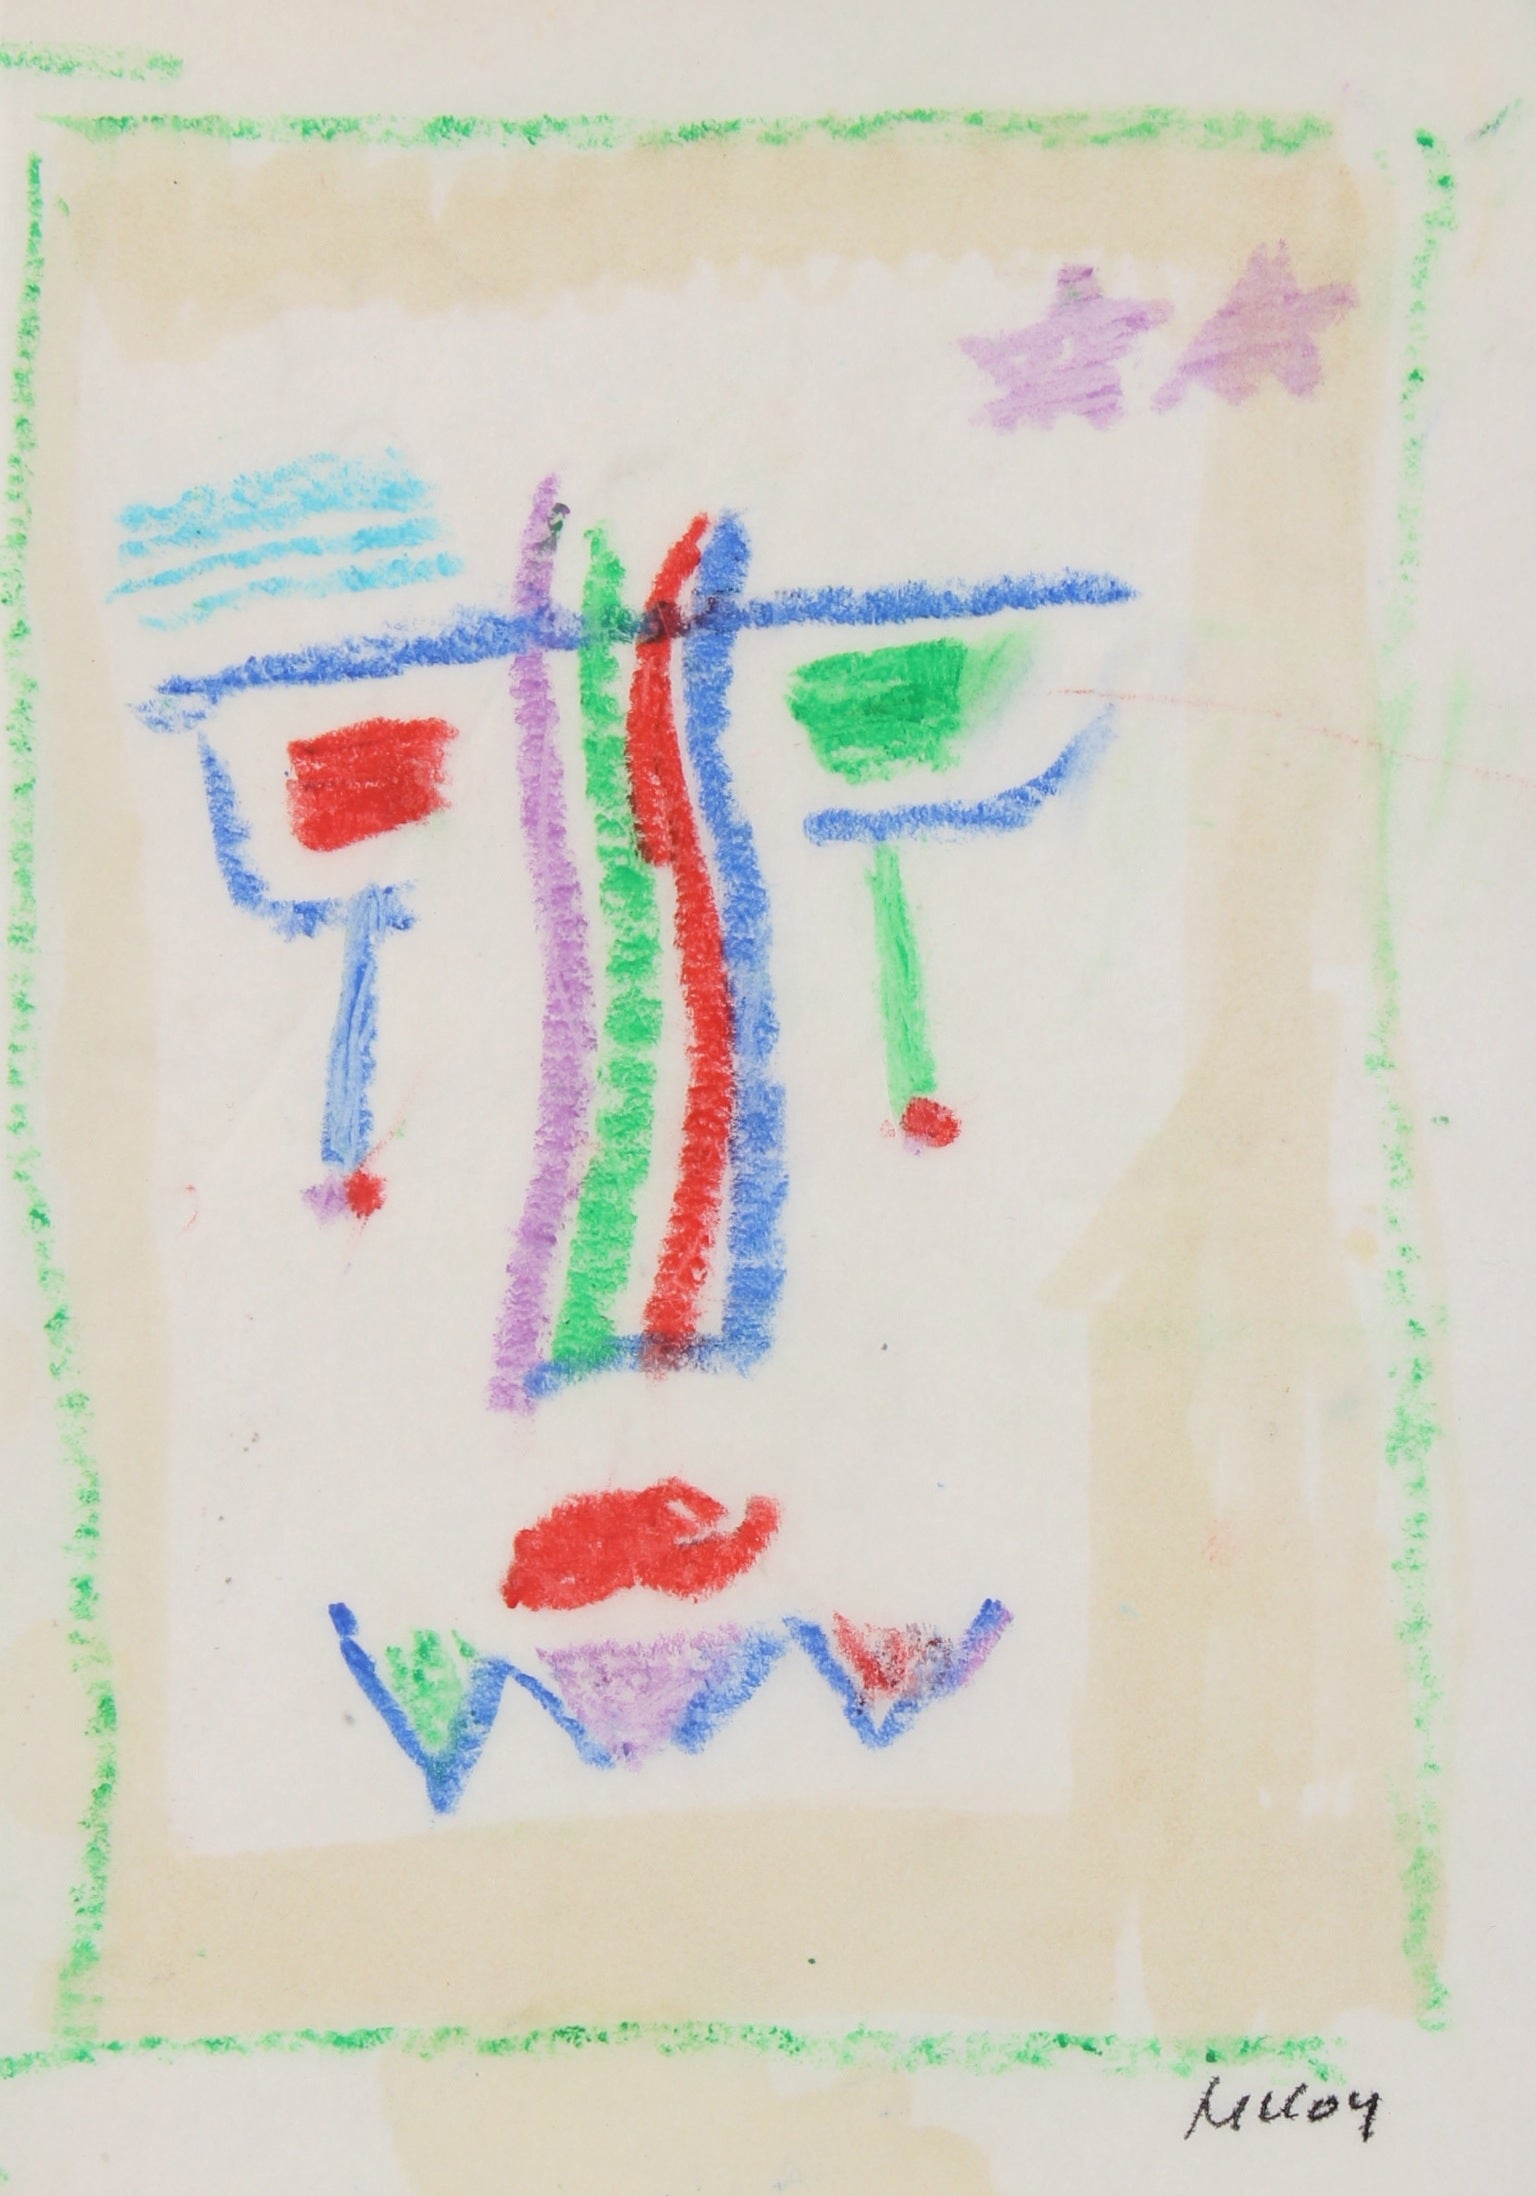 Surreal Abstracted Face<br>1960-70s Pastel<br><br>#91047